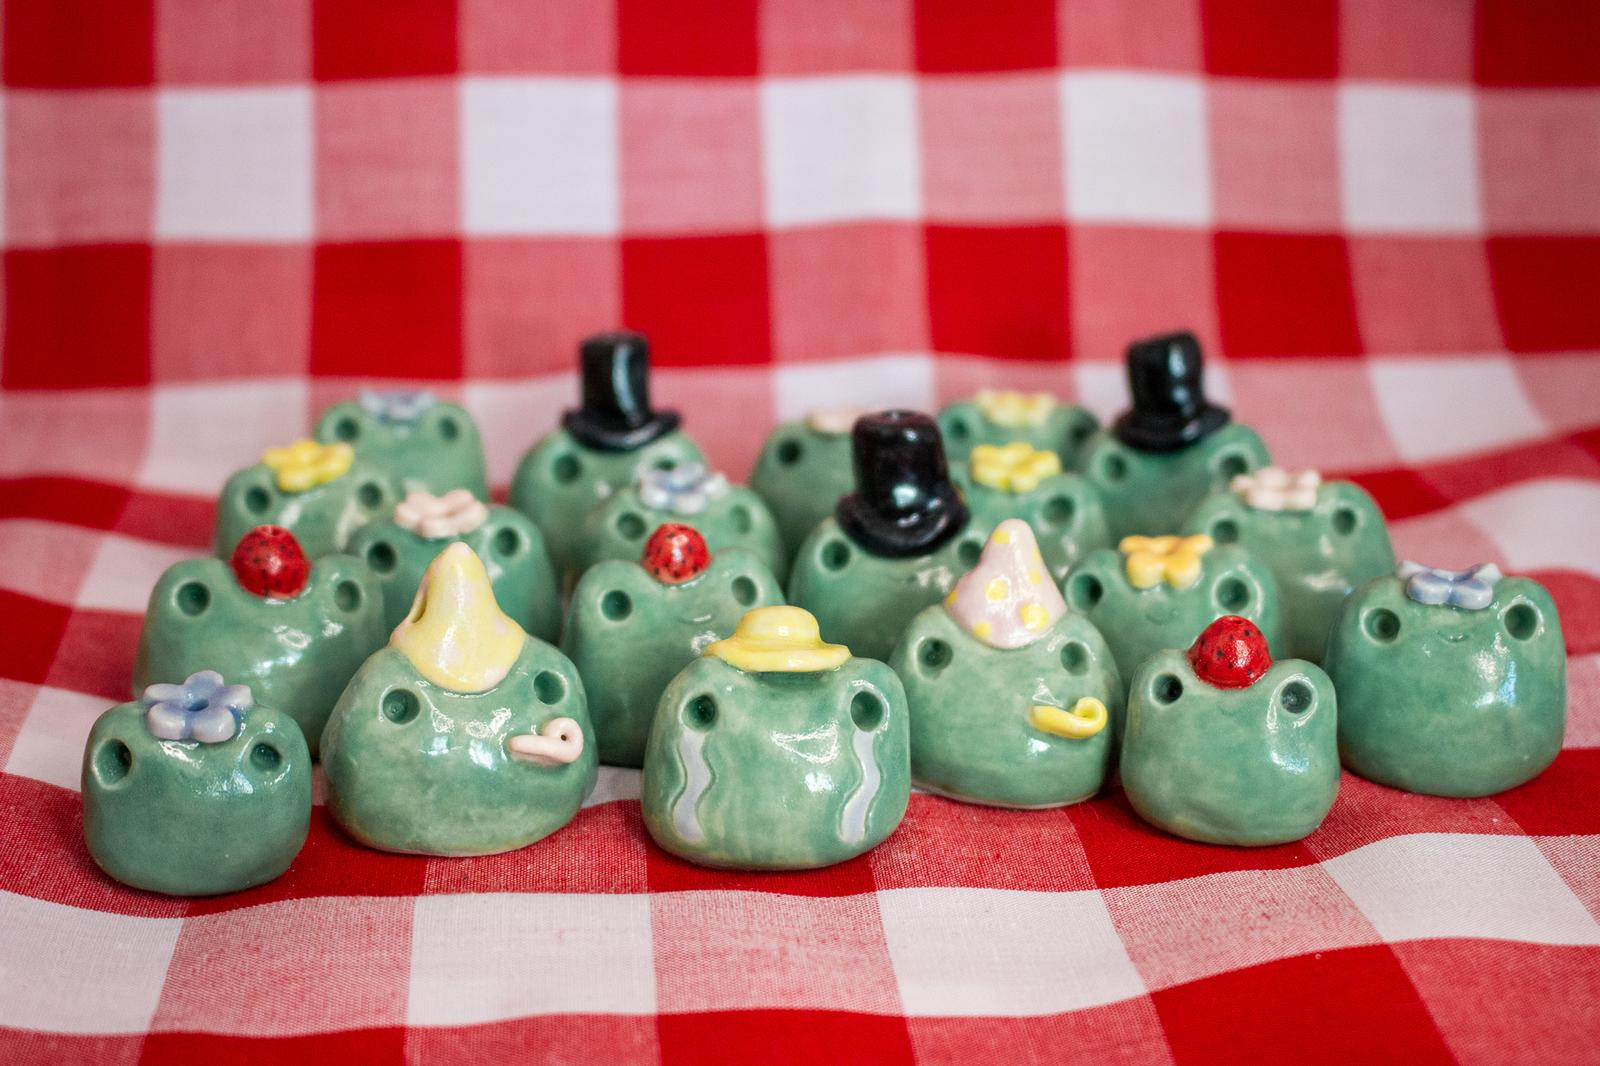 Ceramic Froggy Incense Holders